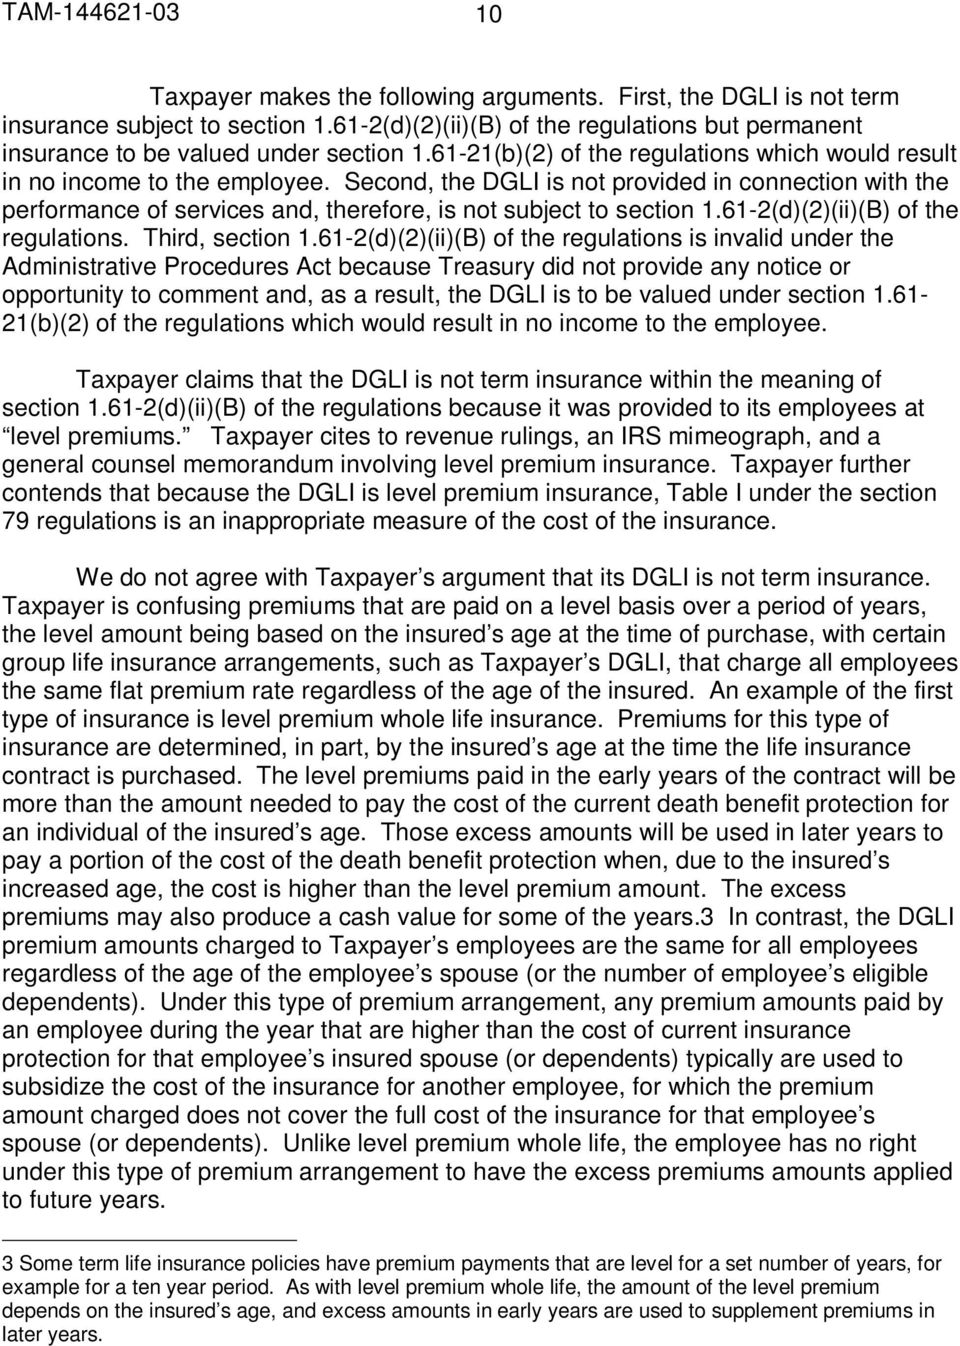 Second, the DGLI is not provided in connection with the performance of services and, therefore, is not subject to section 1.61-2(d)(2)(ii)(B) of the regulations. Third, section 1.